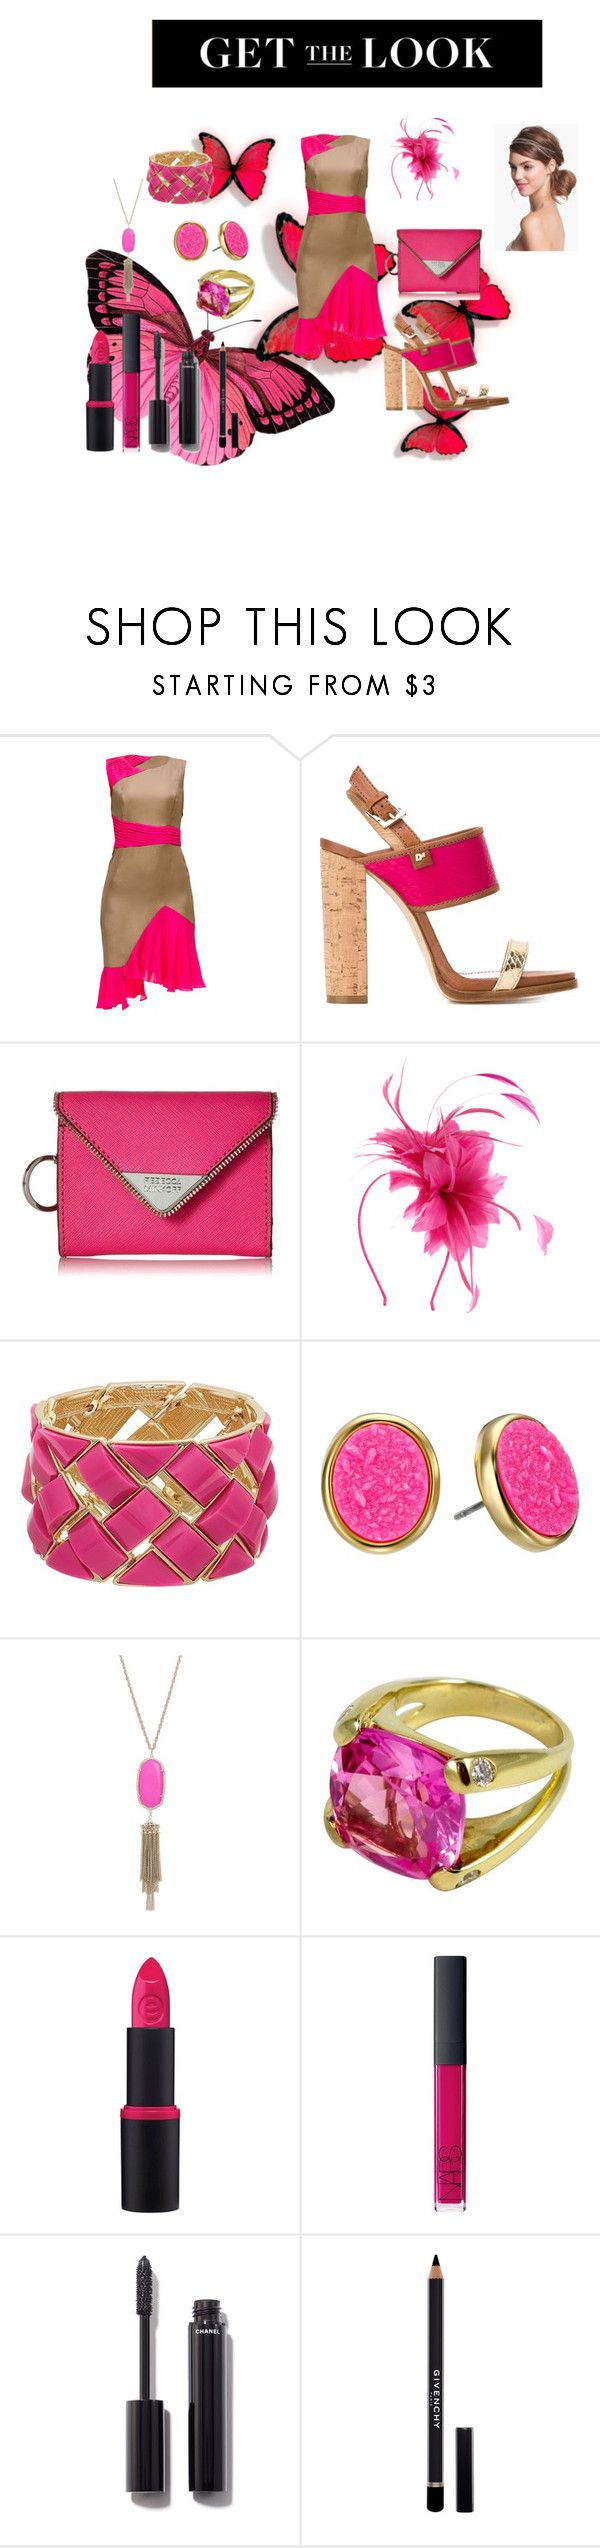 Get the look by kelly17-kalymnos on Polyvore featuring Lattori, Dsquared2, Rebecca Minkoff, Kate Spade, Christina Addison, Kendra Scott, Chanel, Essence, NARS Cosmetics and Givenchy